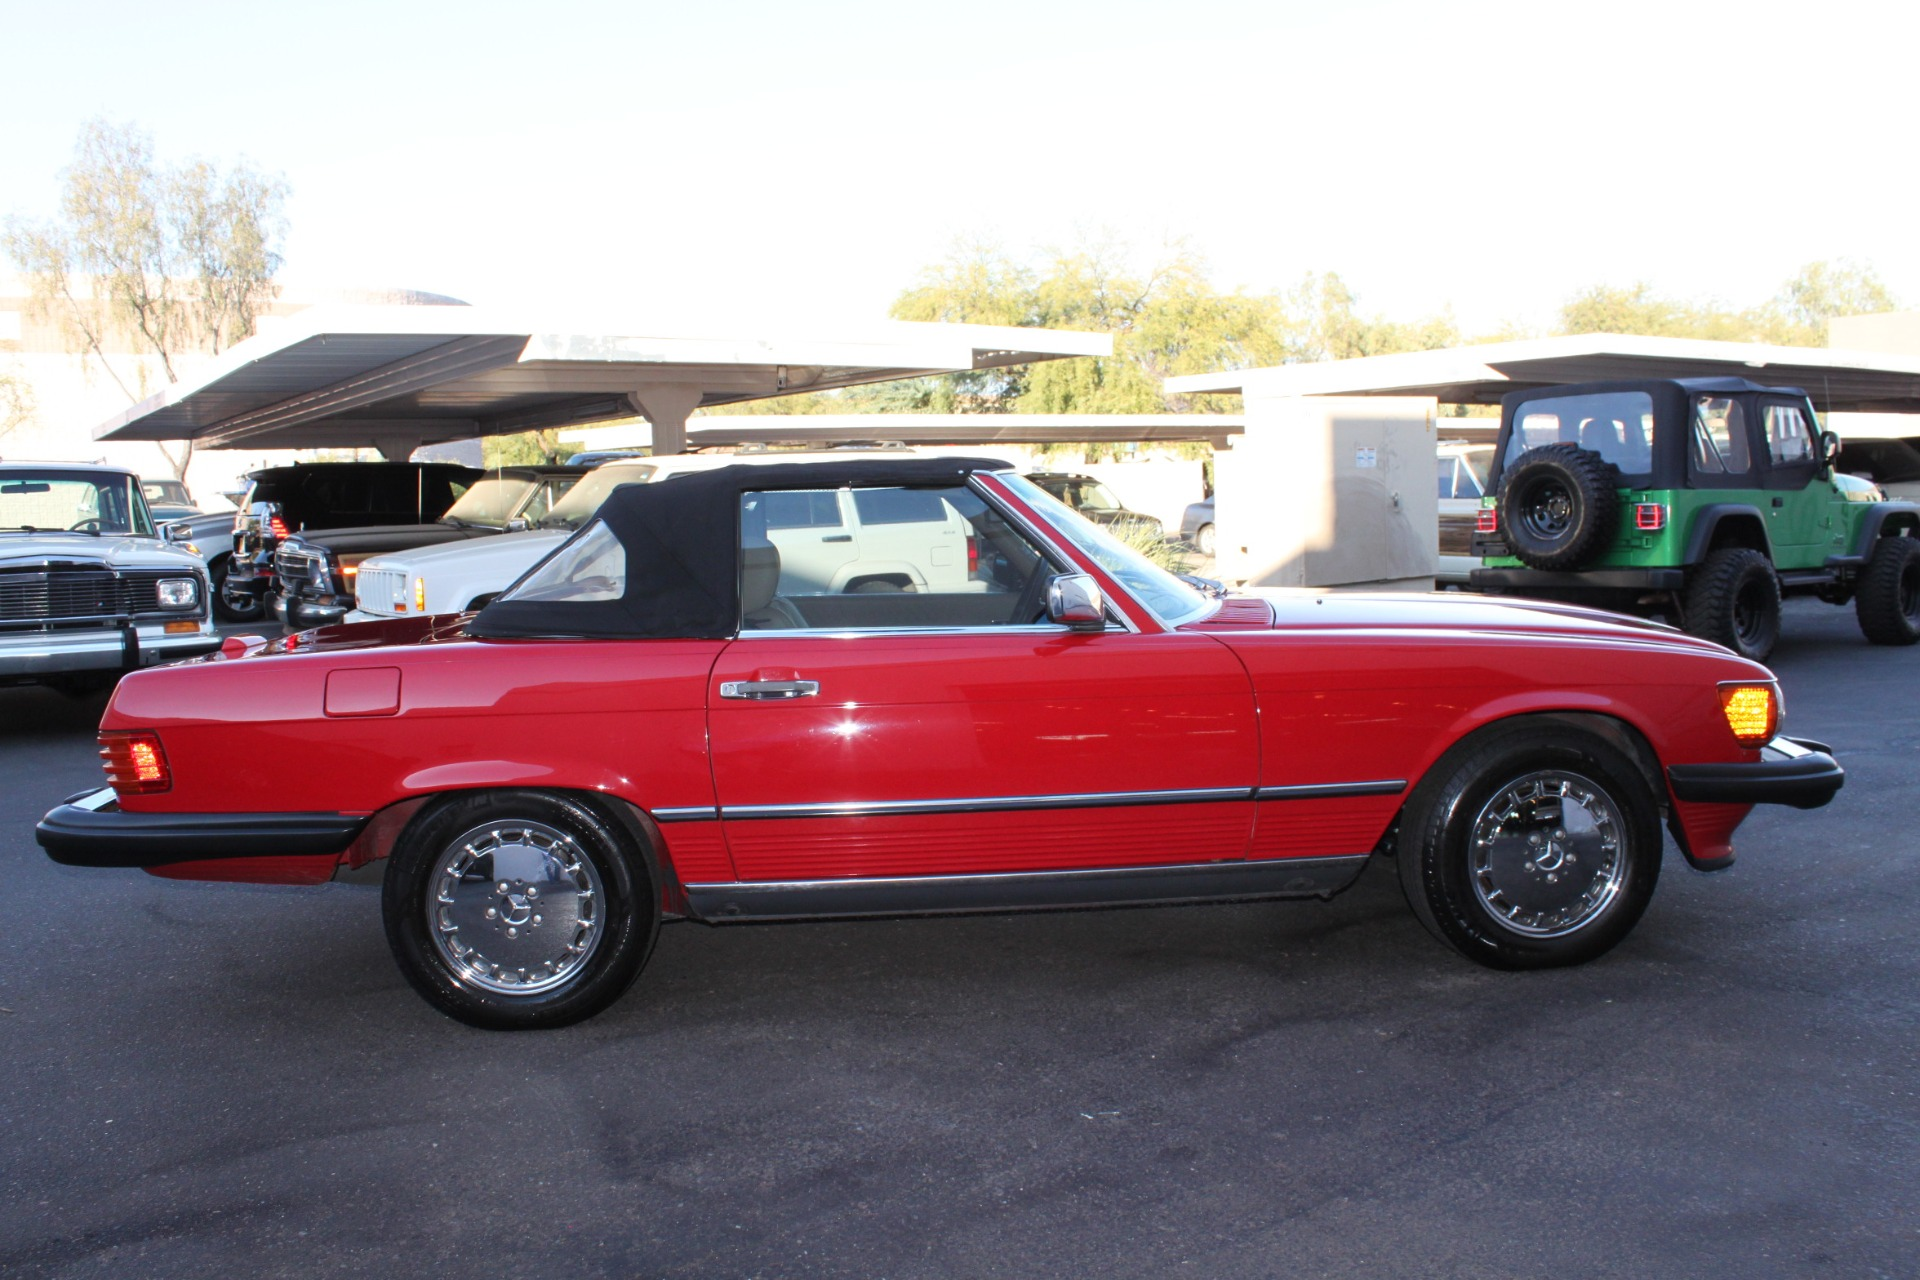 Used-1989-Mercedes-Benz-560-Series-560SL-Lincoln